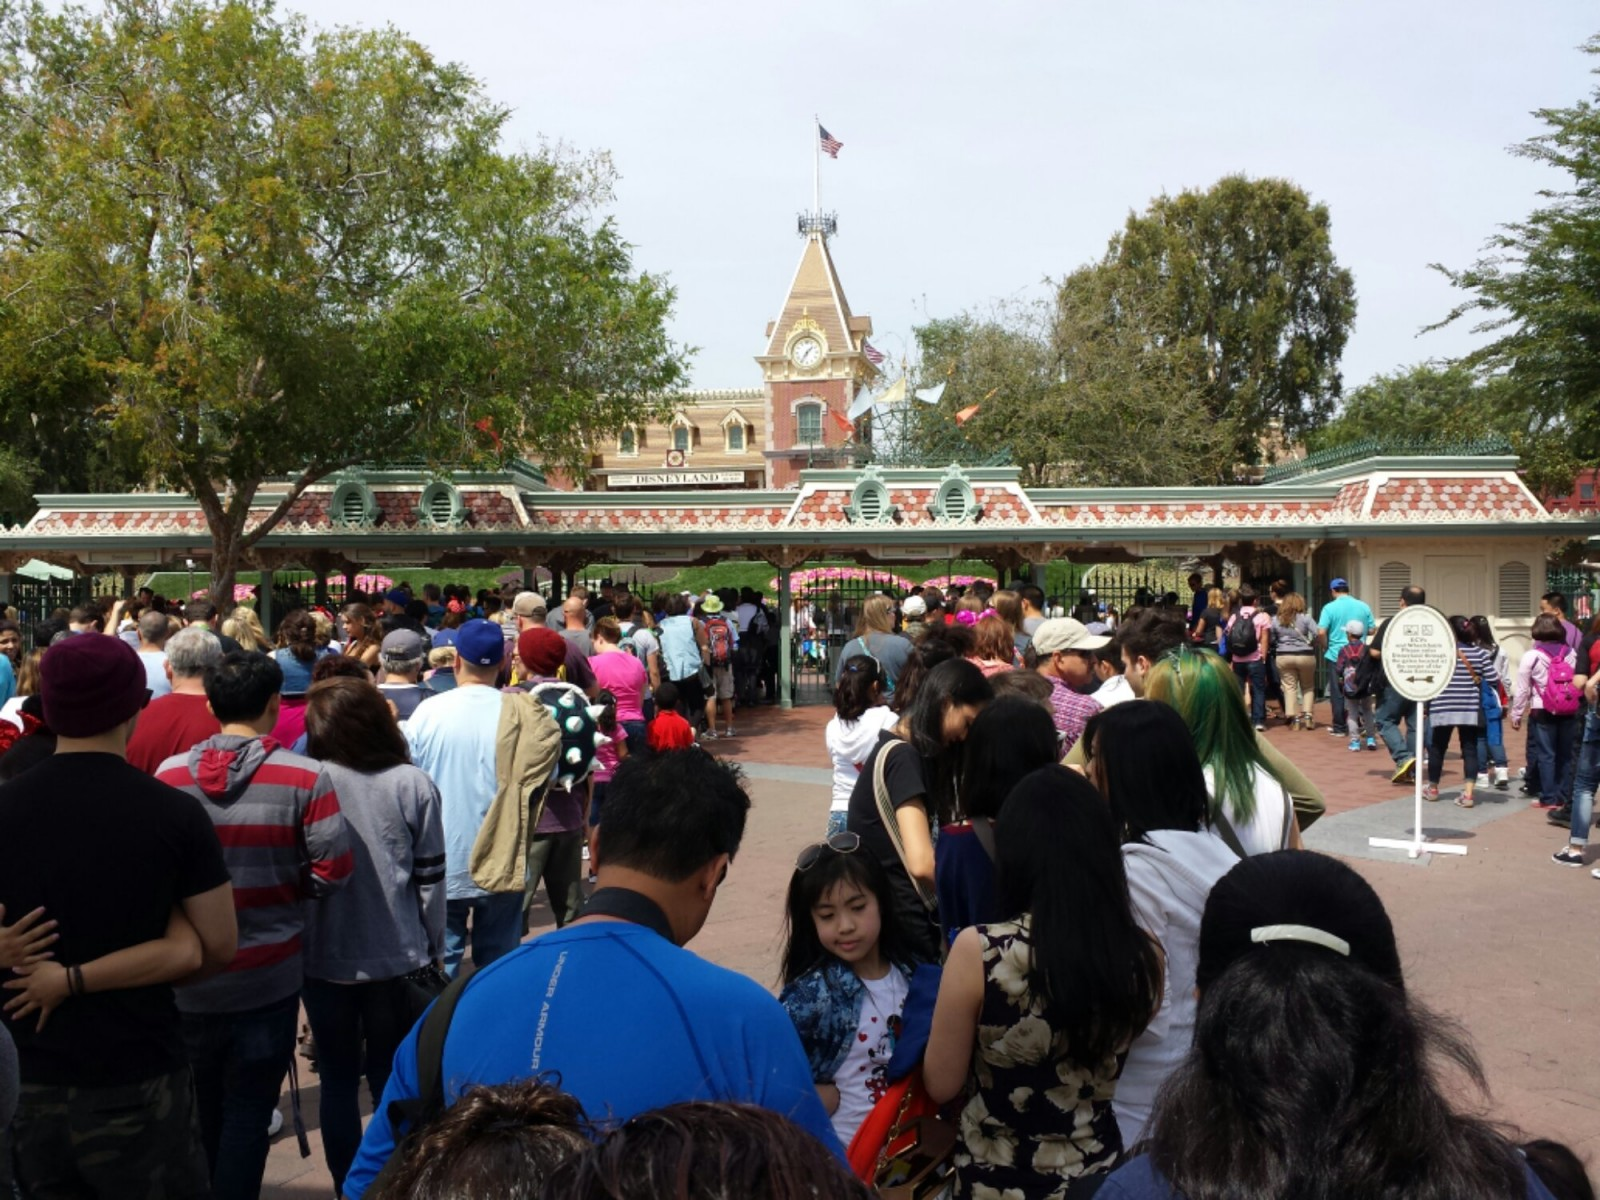 The line for #Disneyland was beyond the monorail beam, DCA to the compass